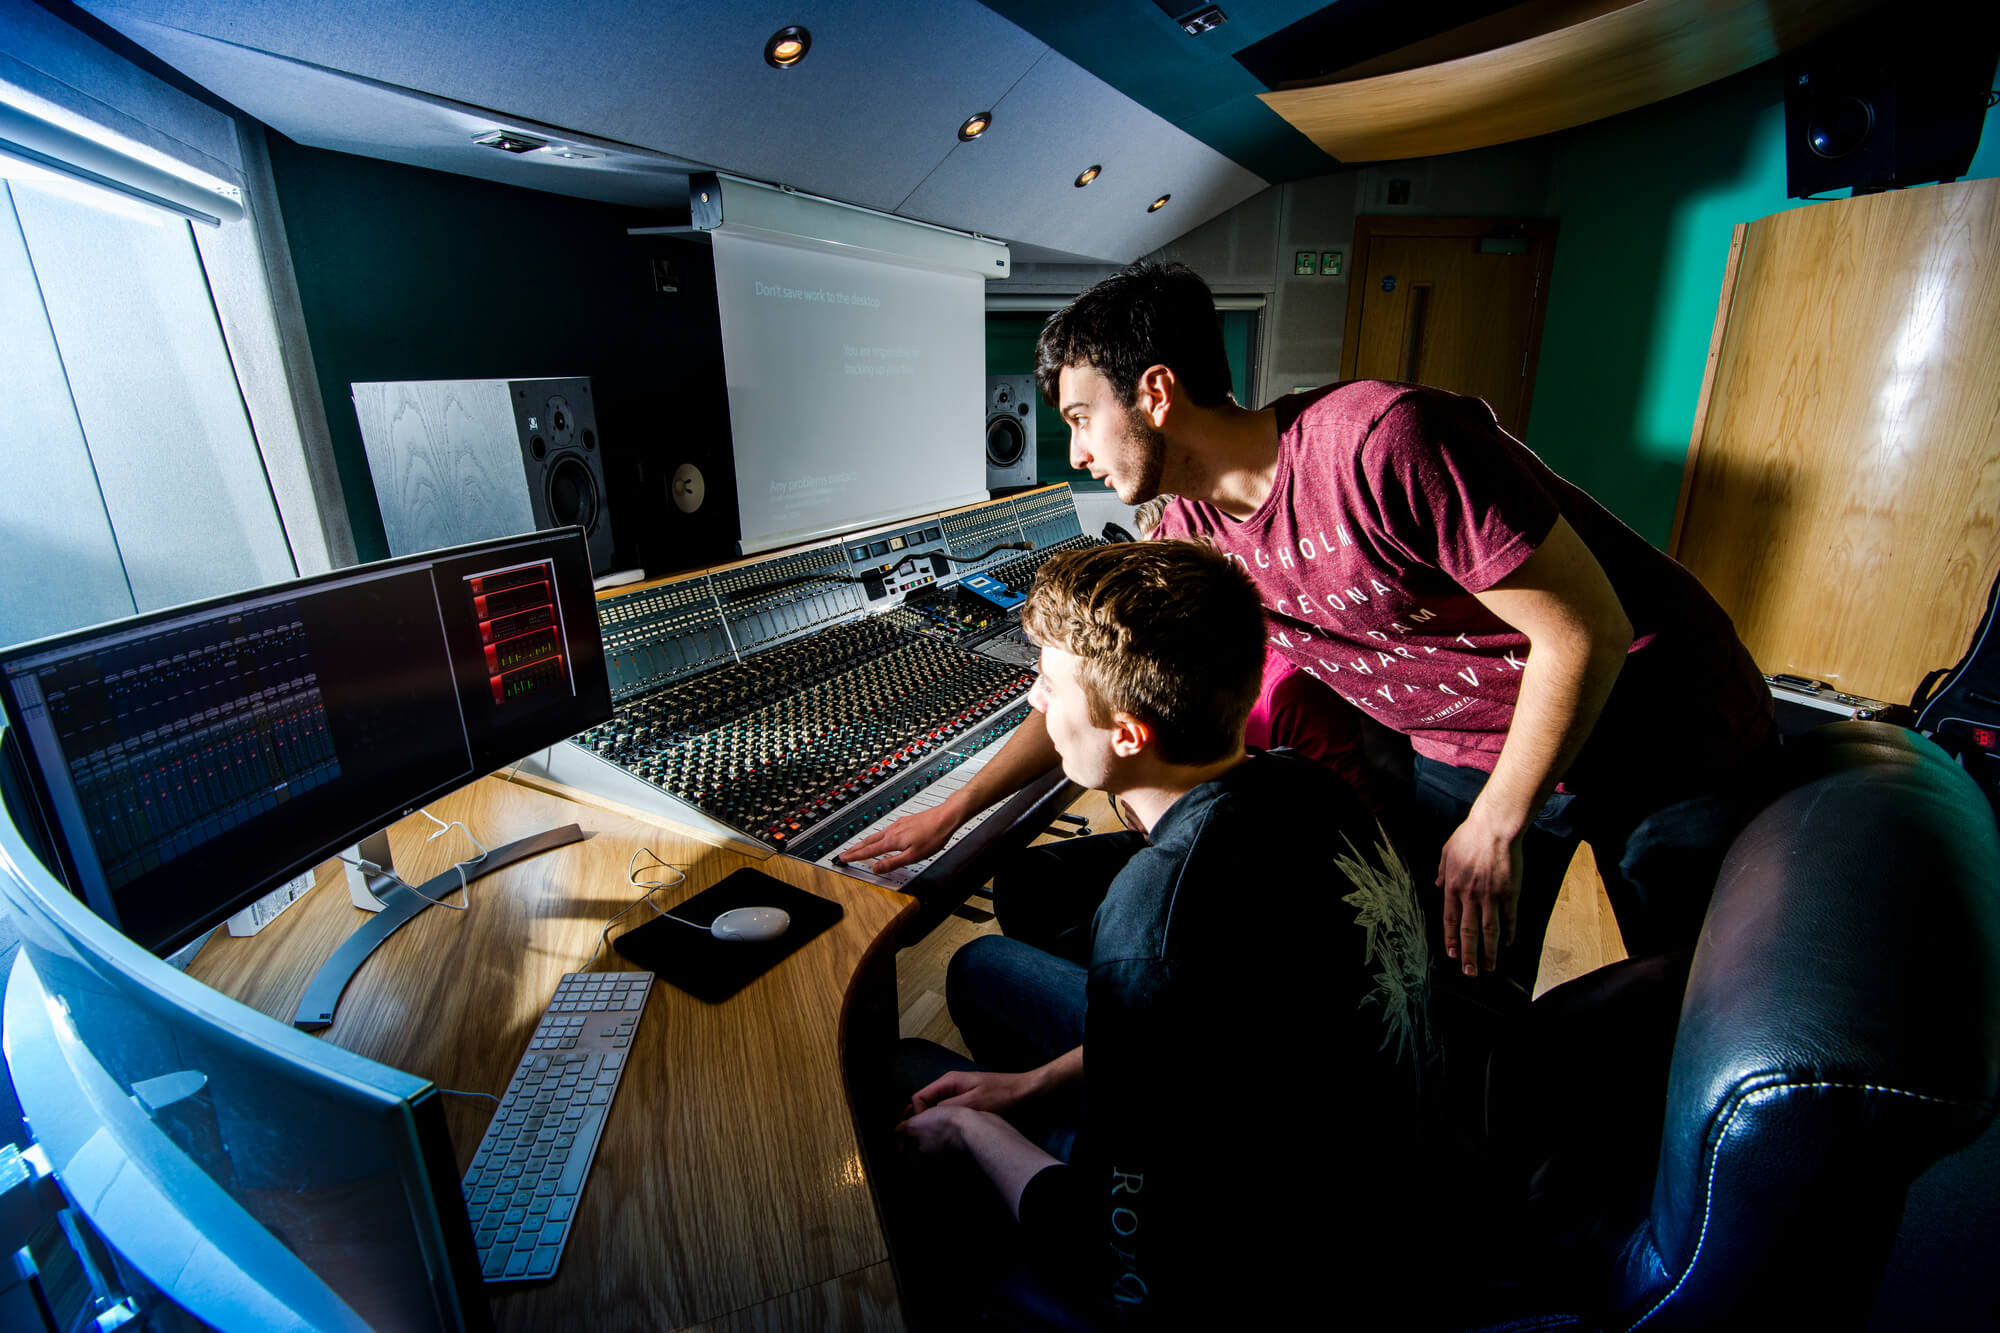 Two males use equipment in a music studio